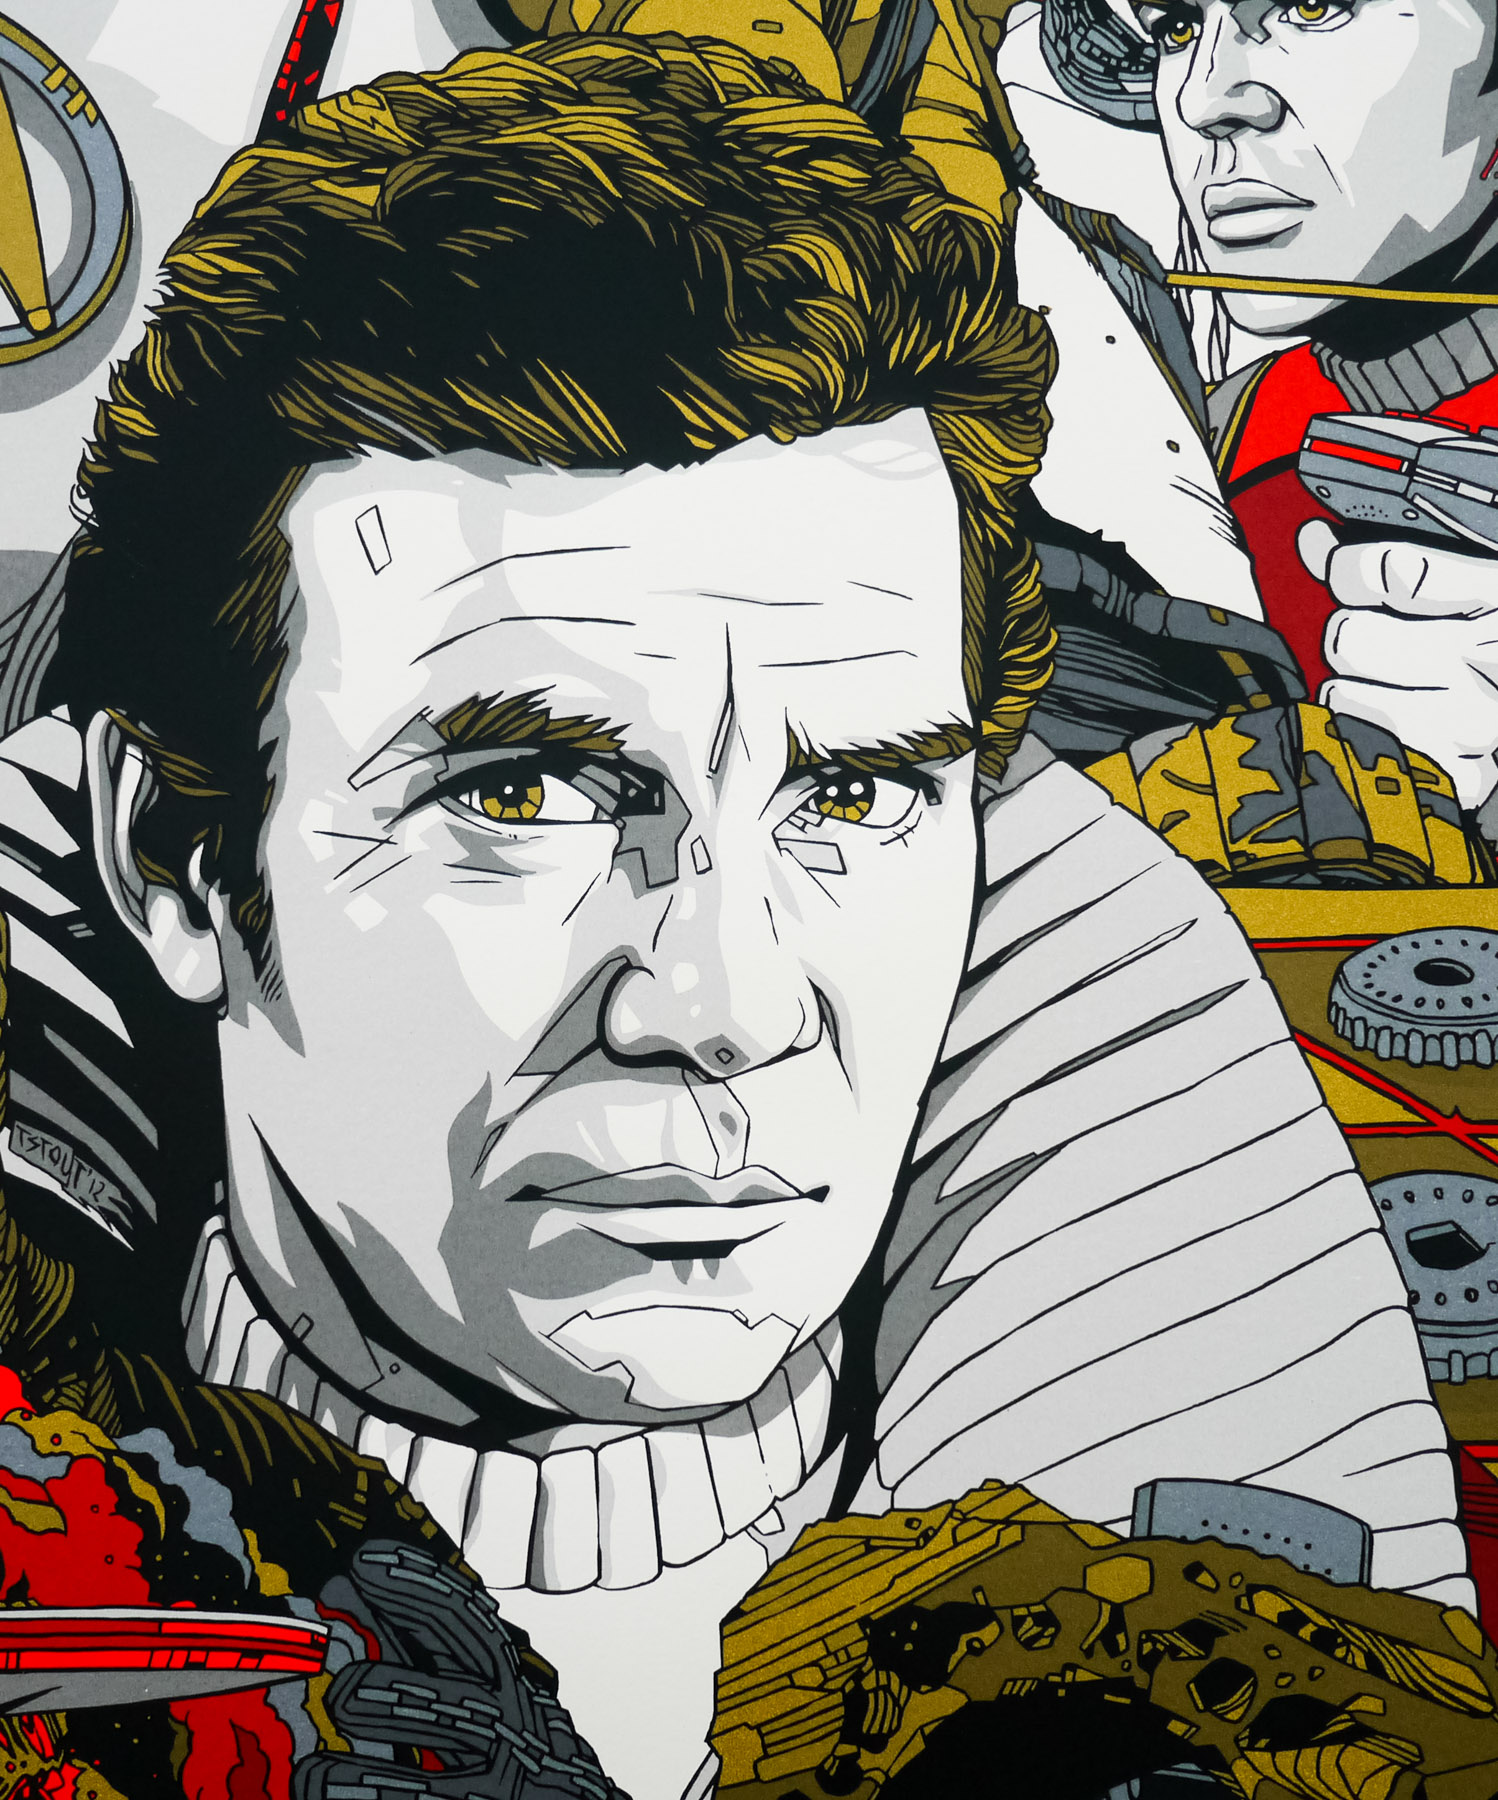 William Shatner's Captain James T Kirk depicted in his 'popped collar' outfit as seen in The Wrath of Khan, by Tyler Stout.